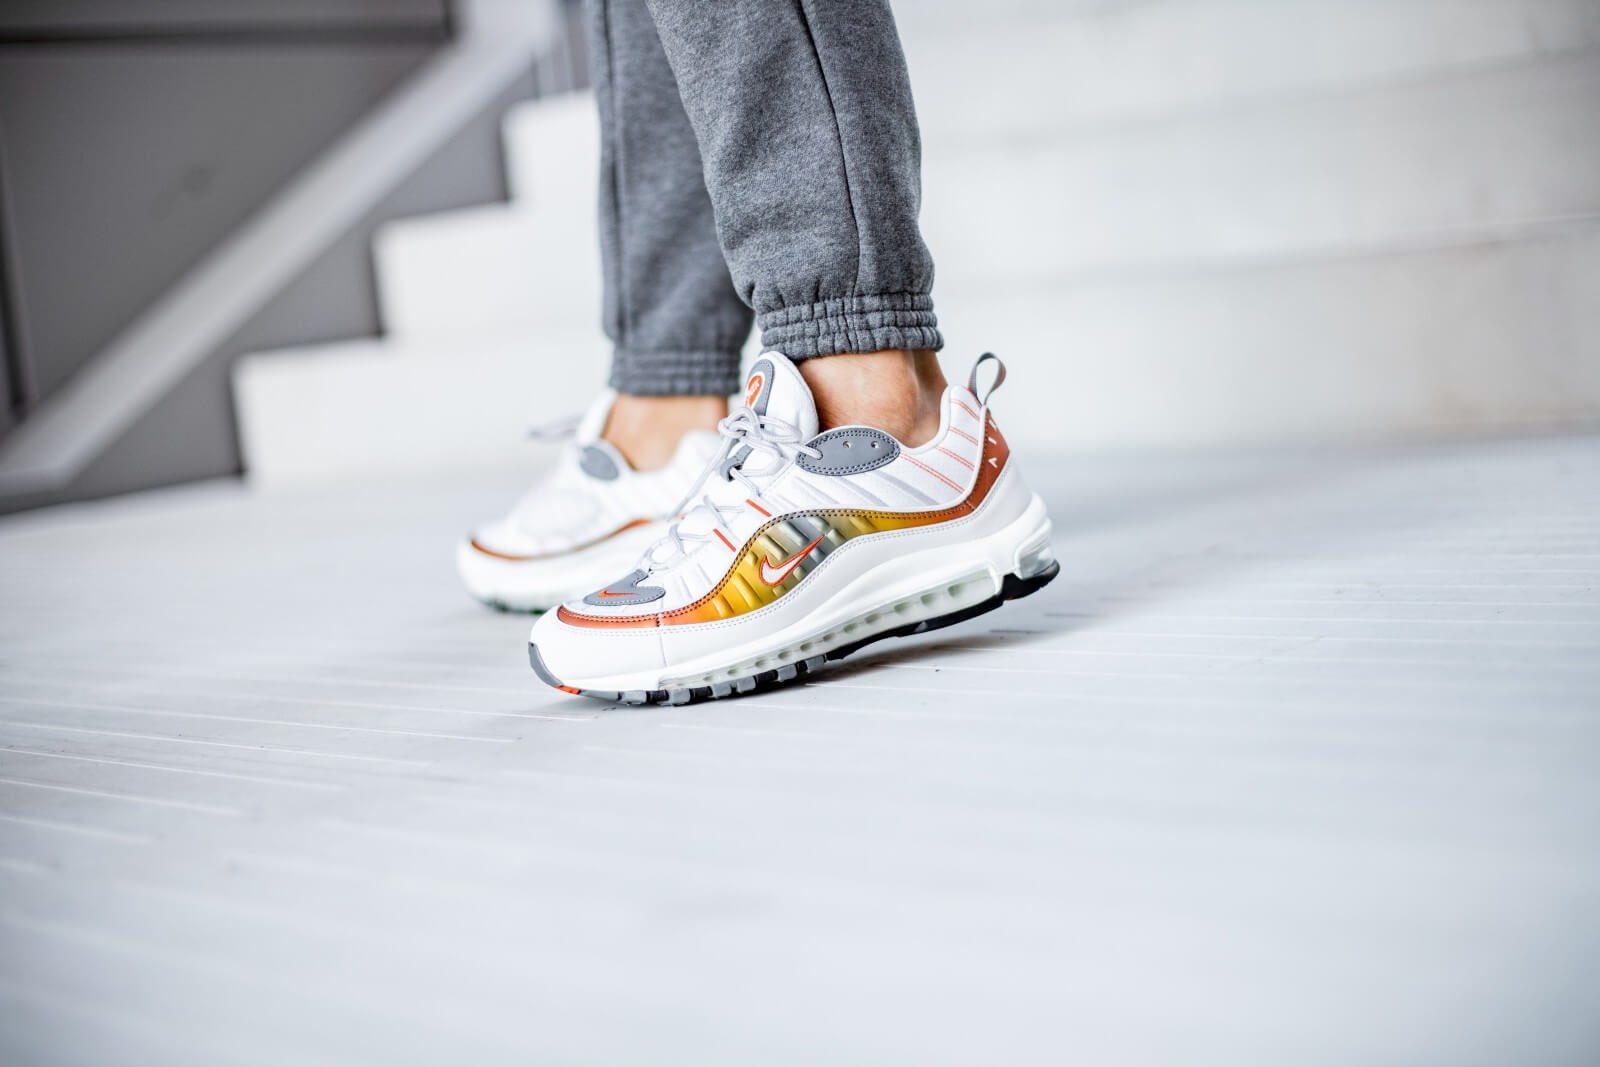 Nike Air Max 98 SE Vast GreyTeam Orange CD0132 002